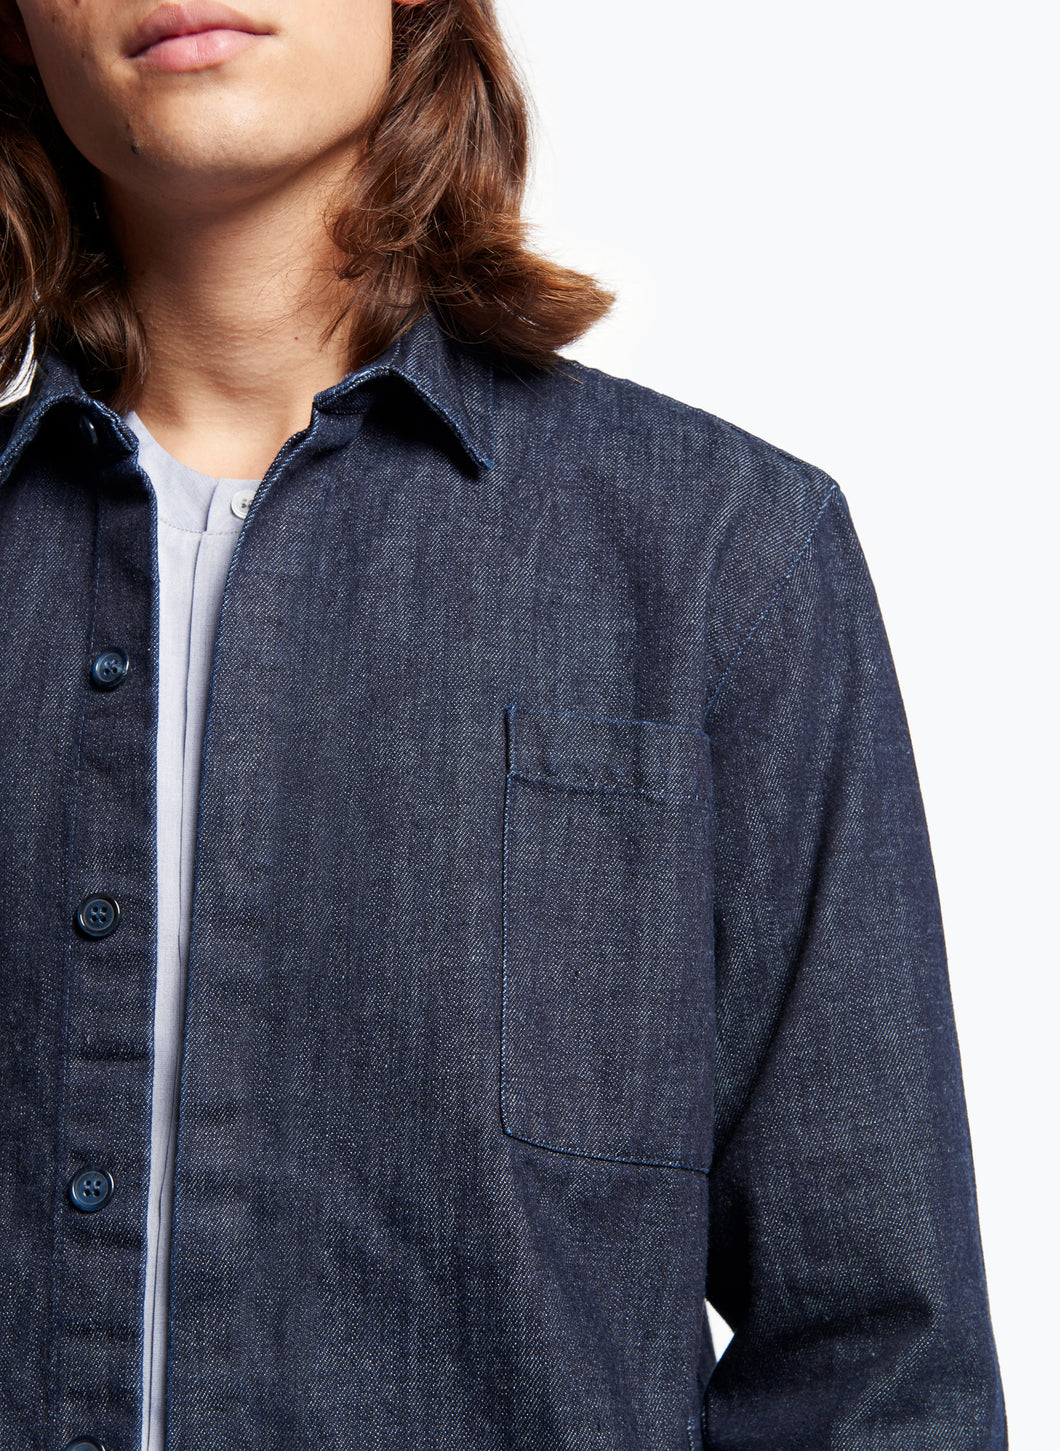 Overshirt with Chest Patch Pocket in Rinsed Denim